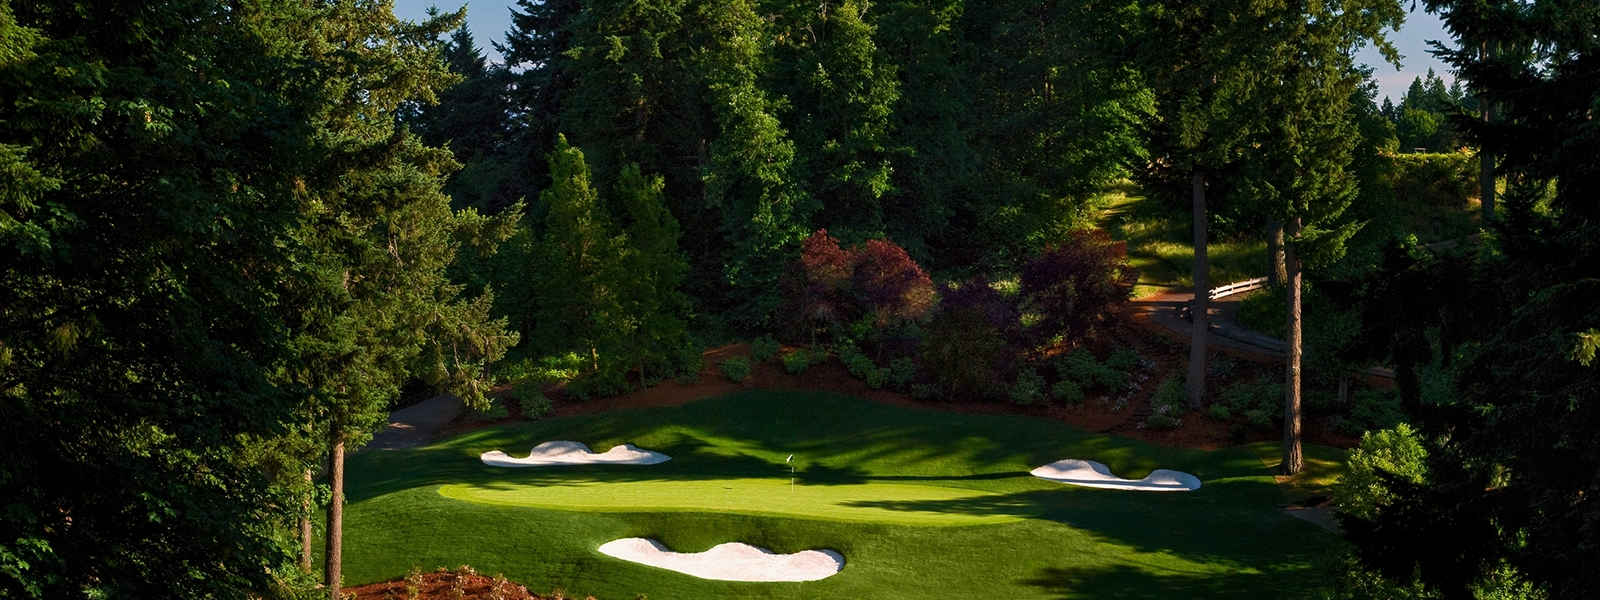 The Oregon Golf Club